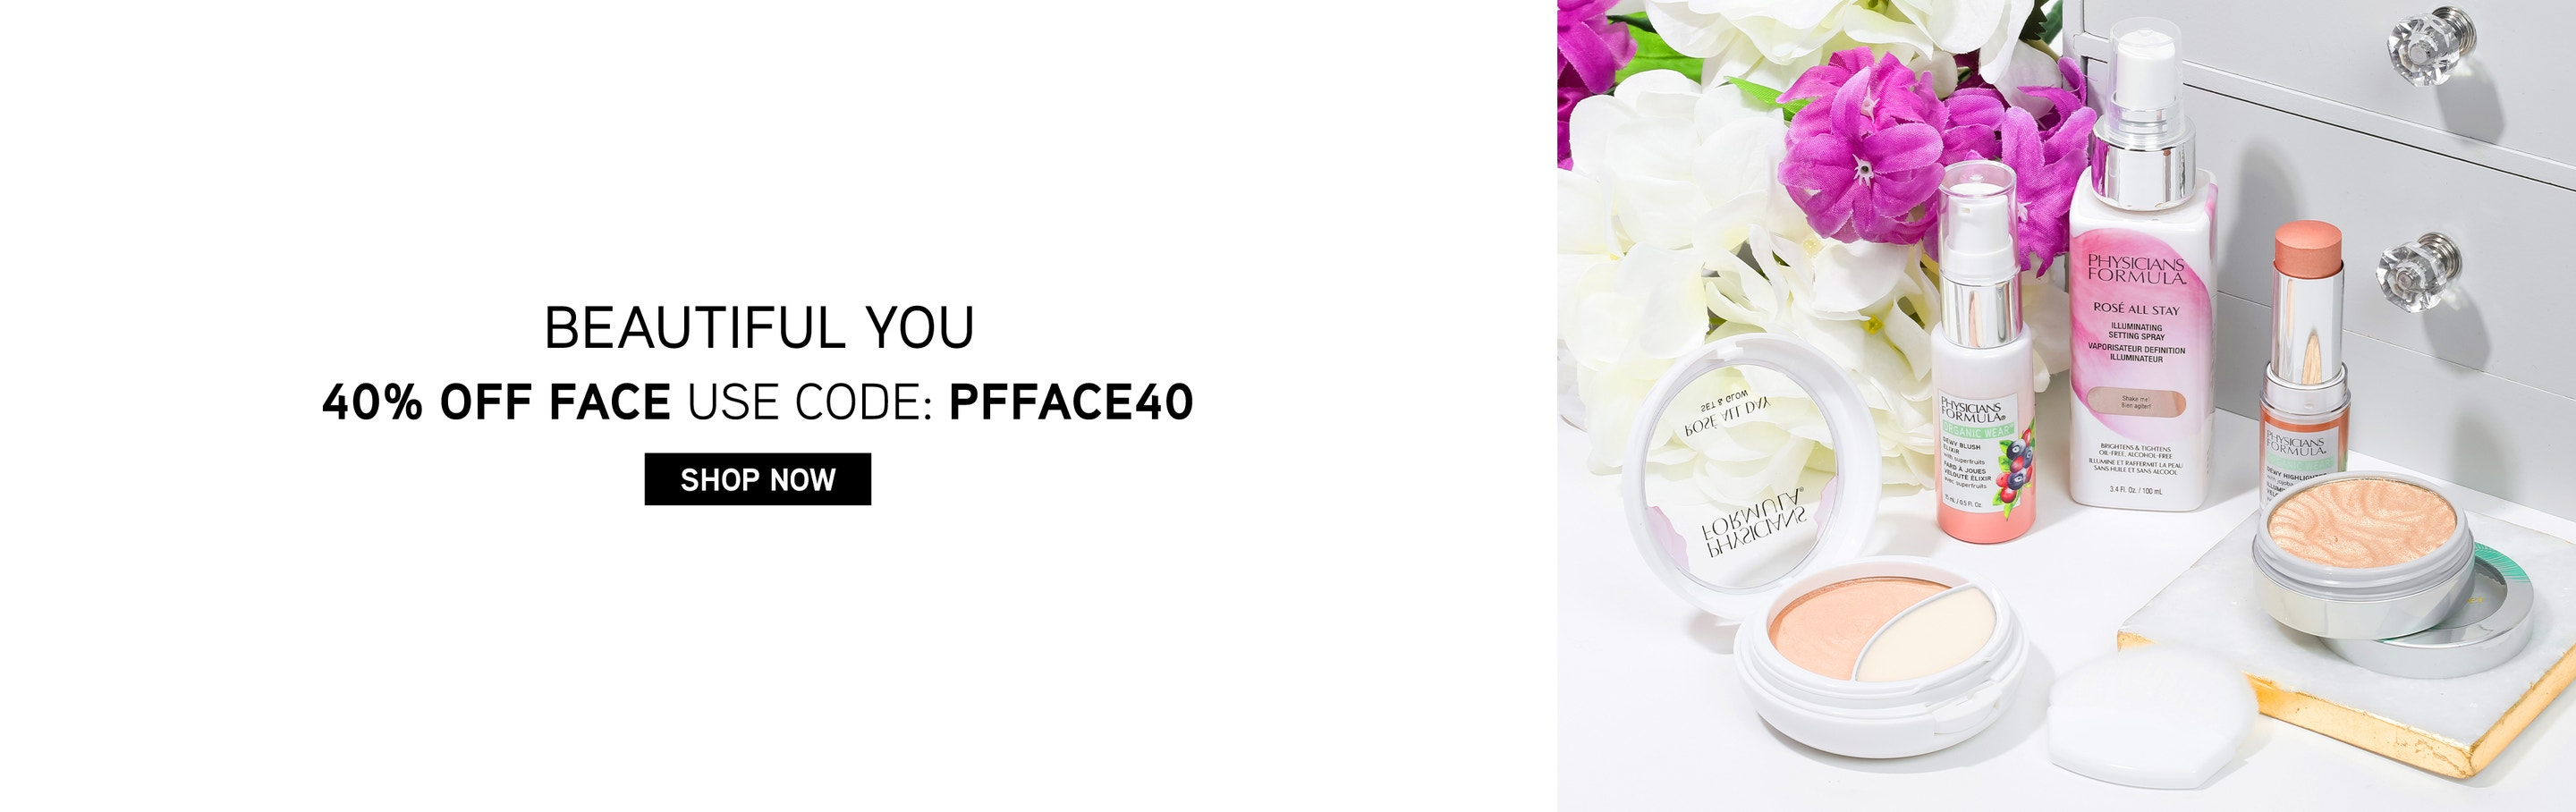 Beautiful You - 40% Off Face - Use Code: PFFACE40 | Shop Now | Physicians Formula | Products displayed wirh flowers in background